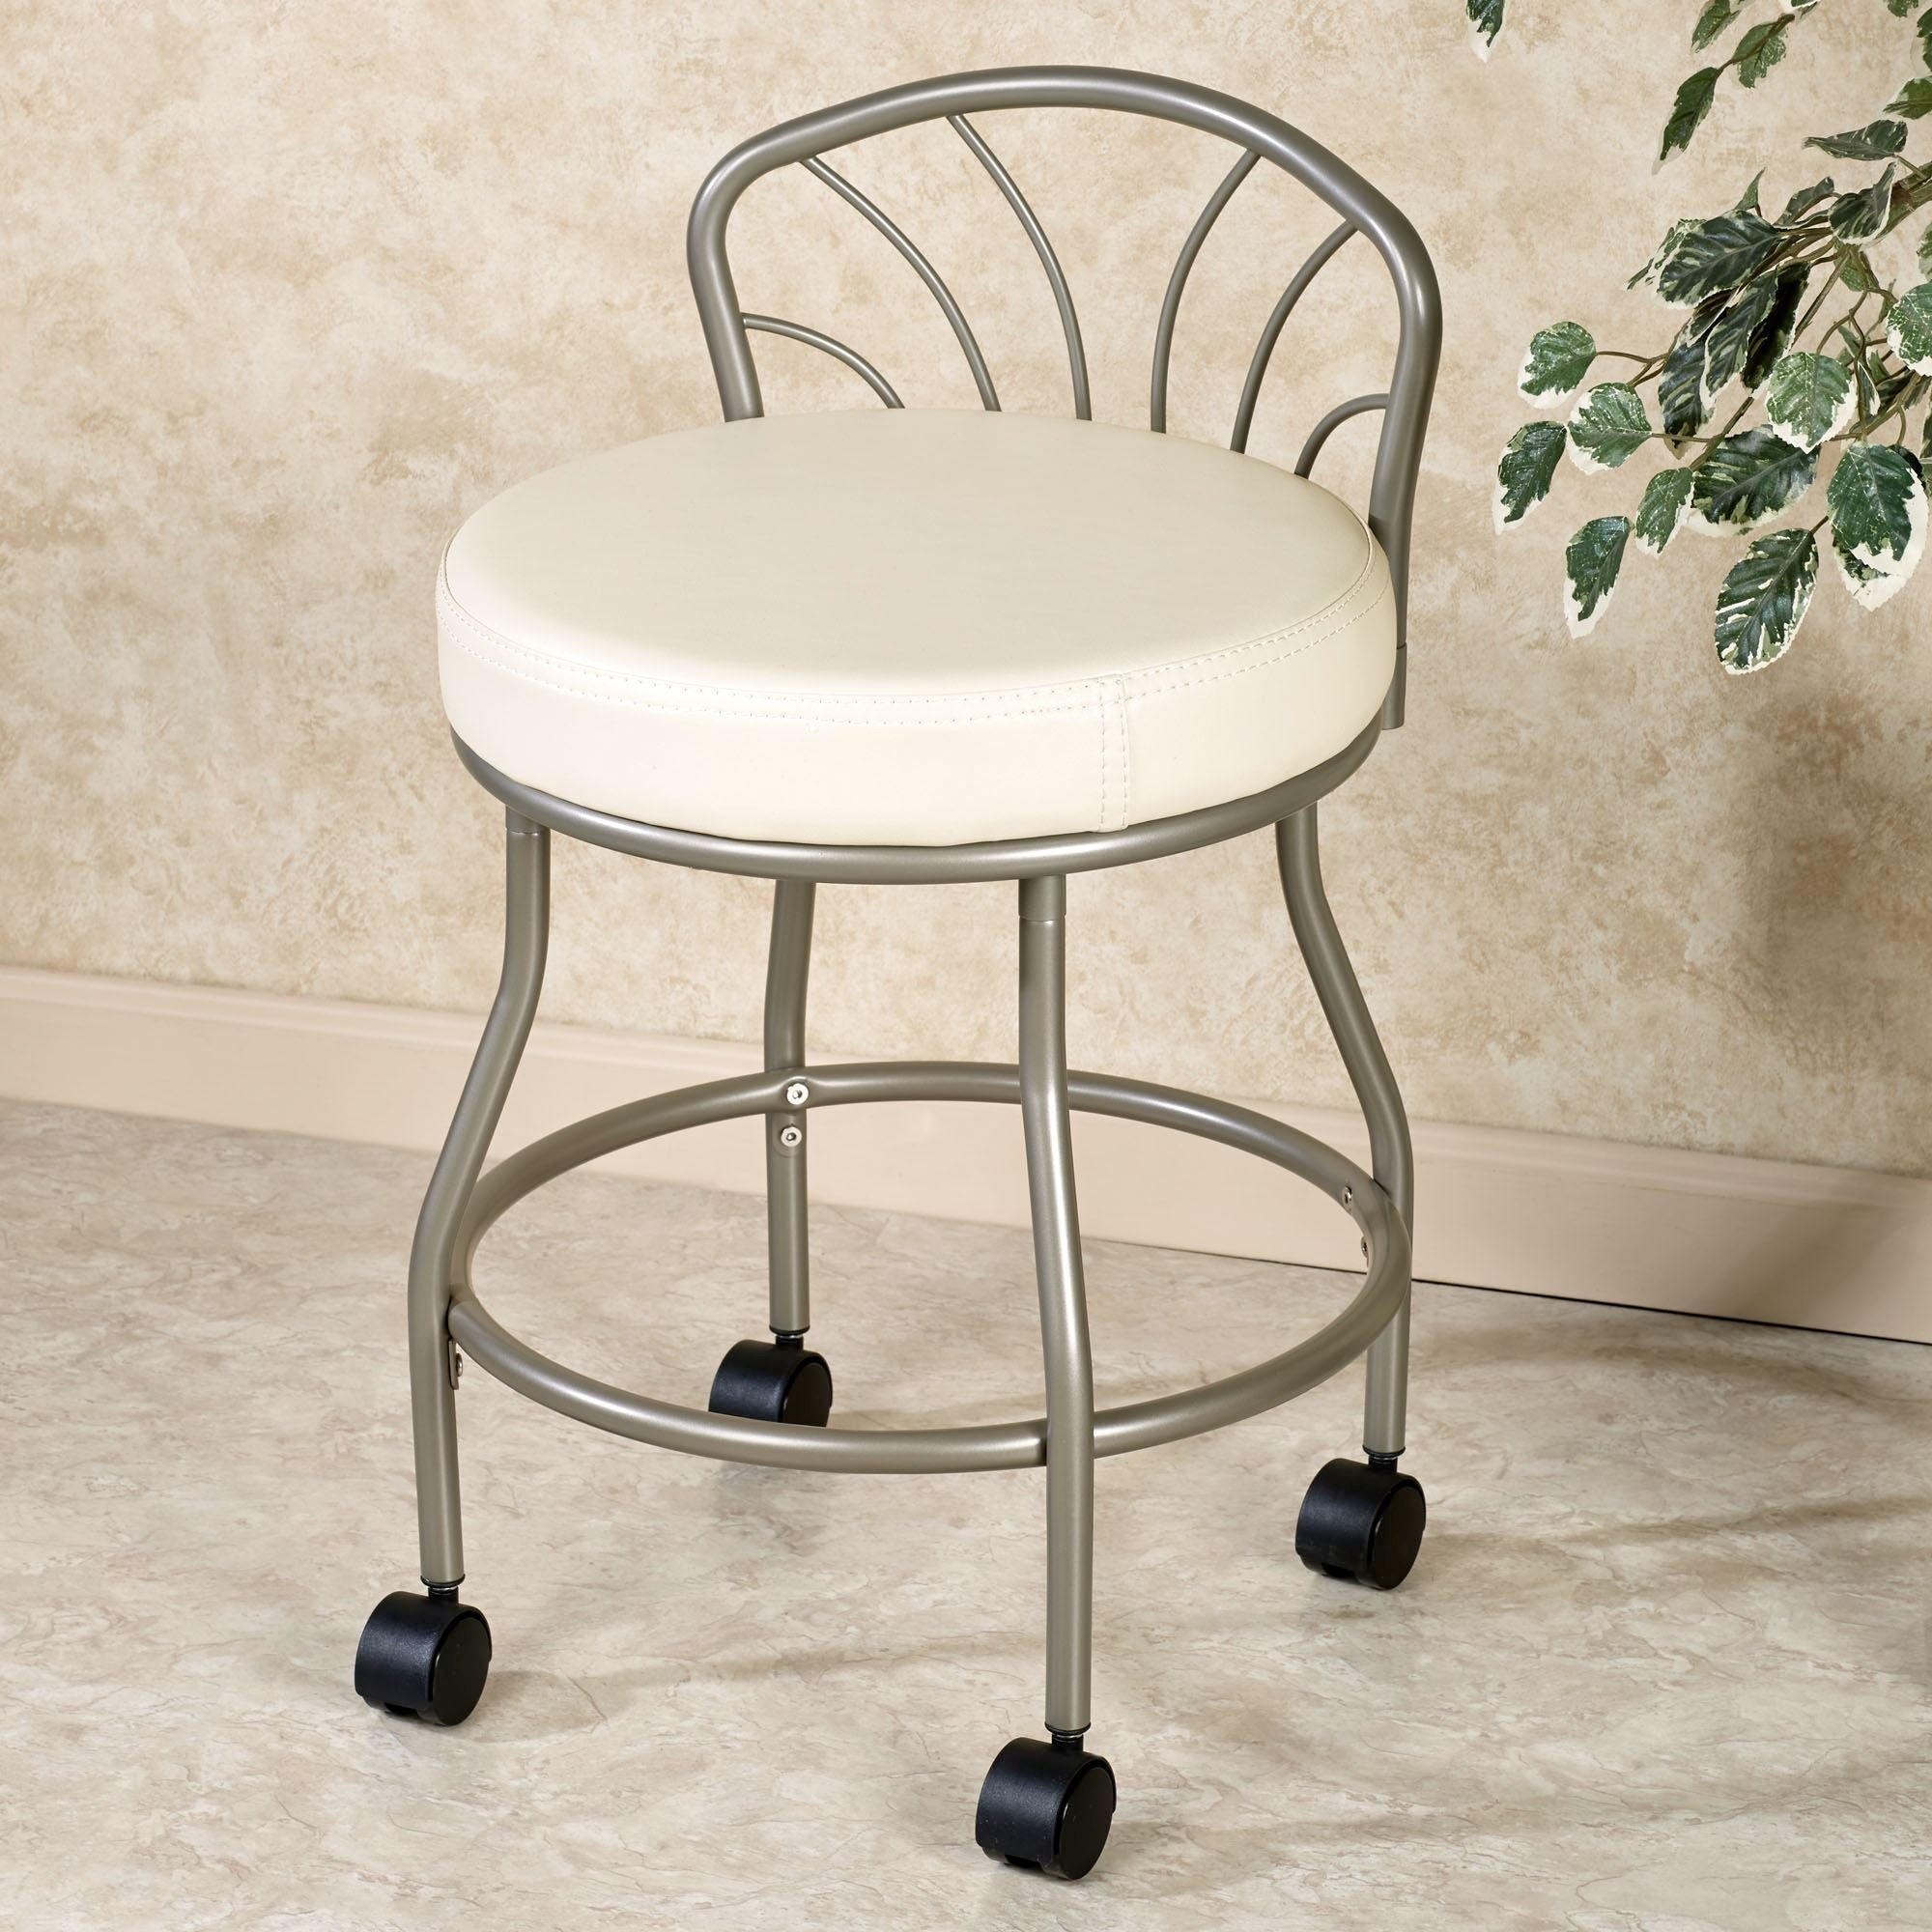 Best Flare Back Powder Coat Nickel Finish Vanity Chair With Casters With Pictures